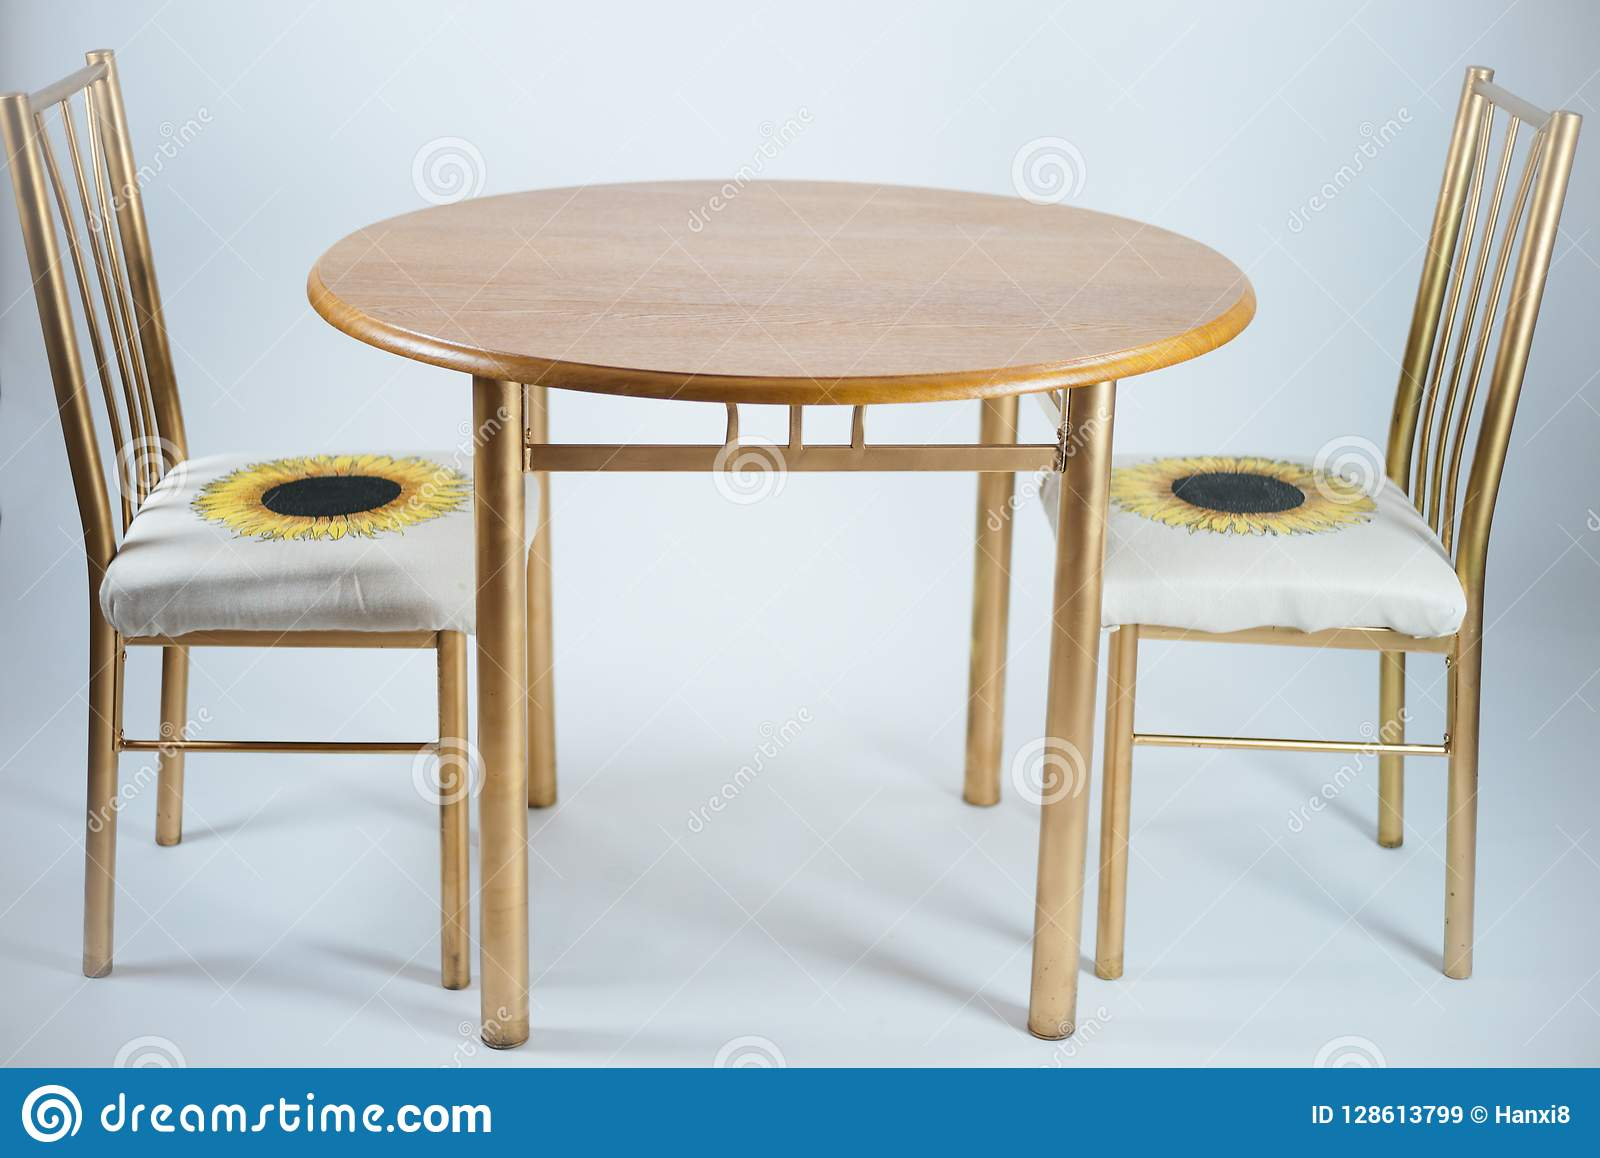 two chair dining table drafting chairs with arms stock image of round house